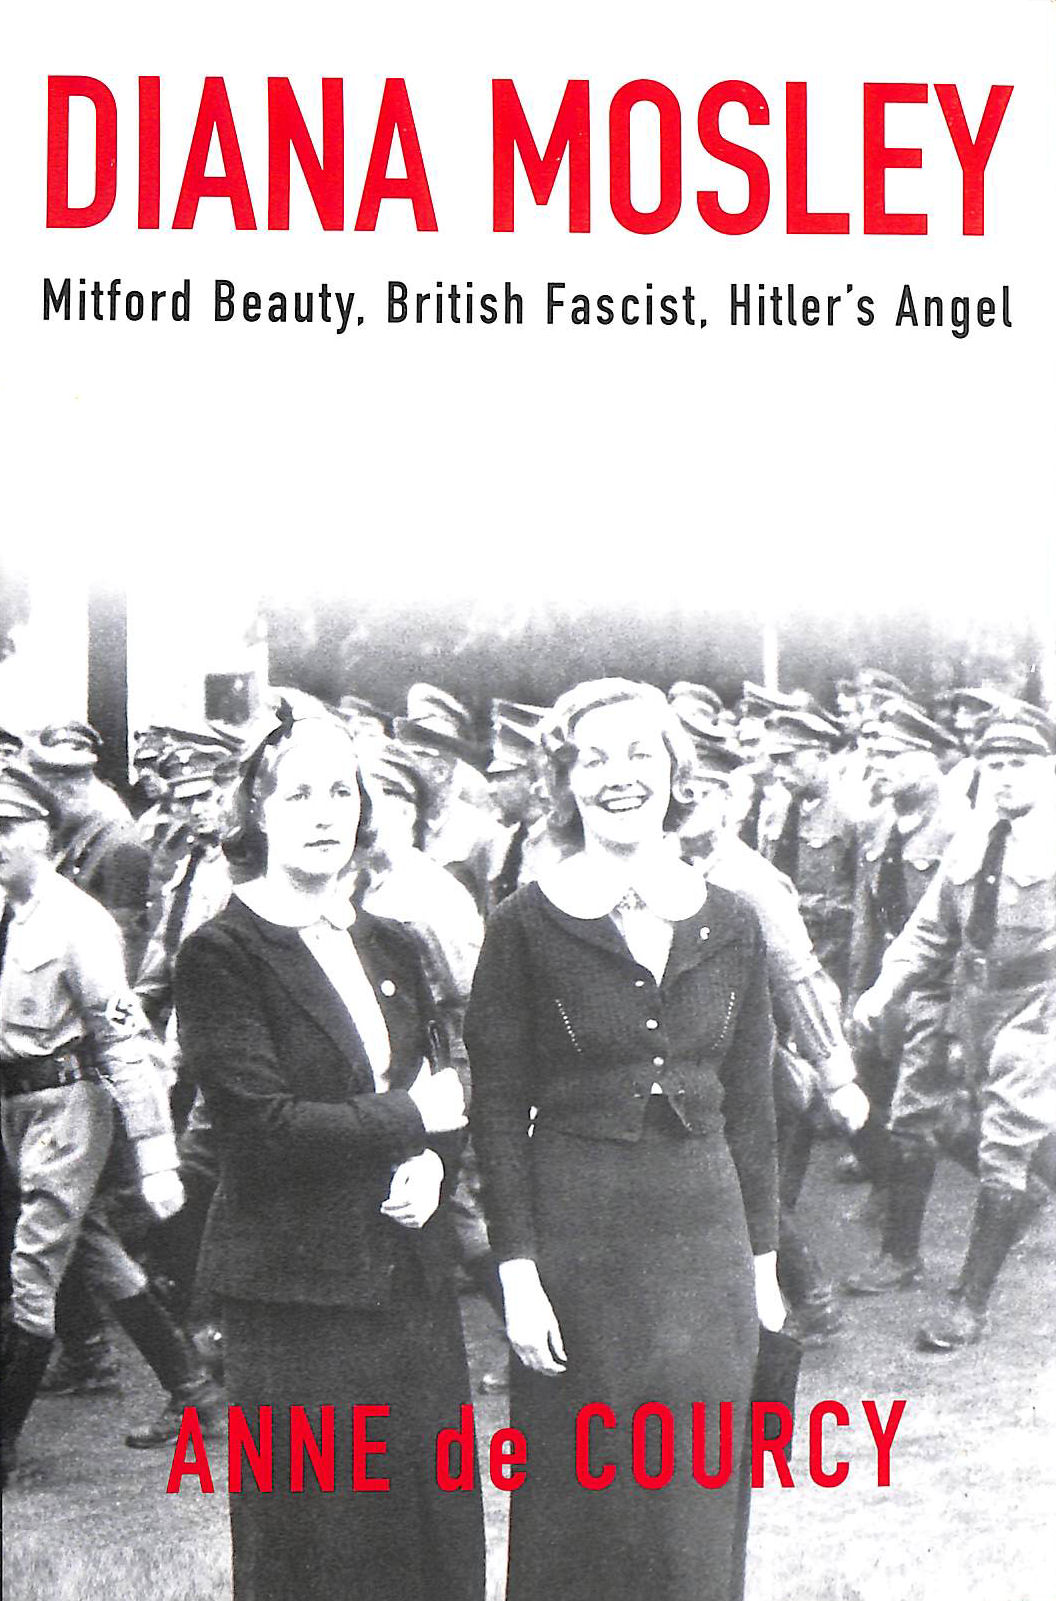 Image for Diana Mosley: Mitford Beauty, British Fascist, Hitler's Angel